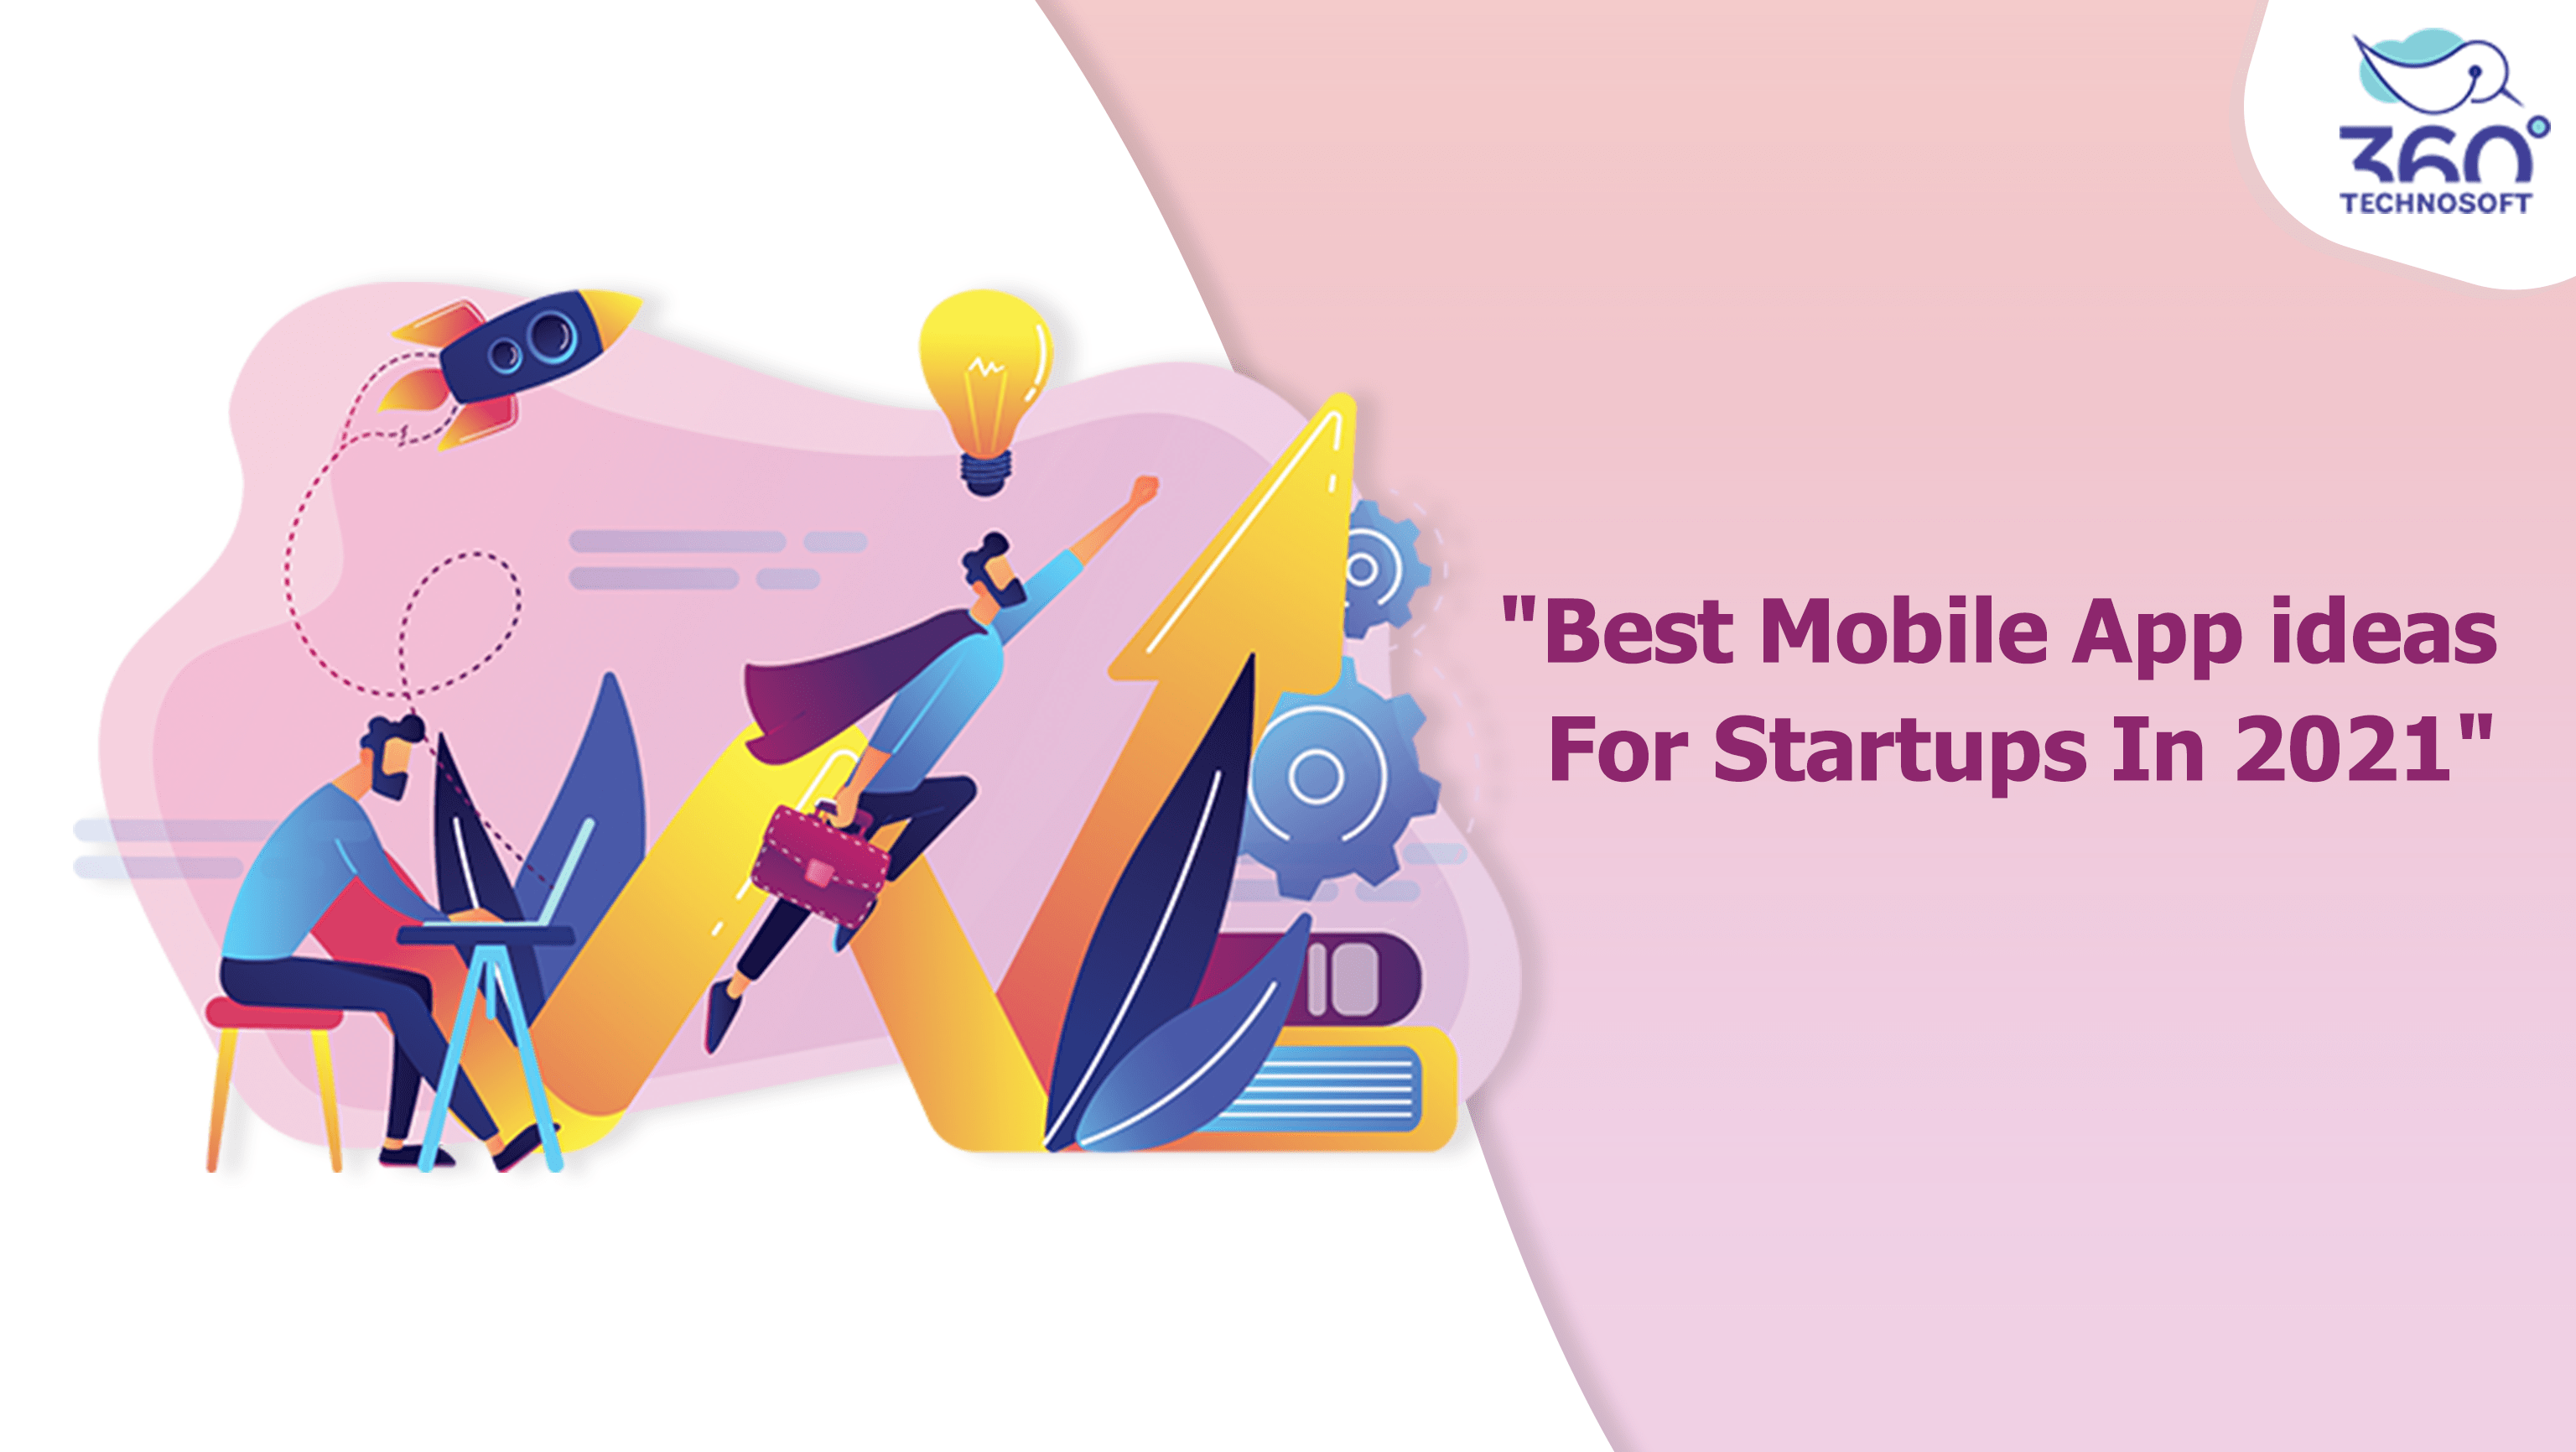 MBest Mobile App Ideas For Startups In 2021